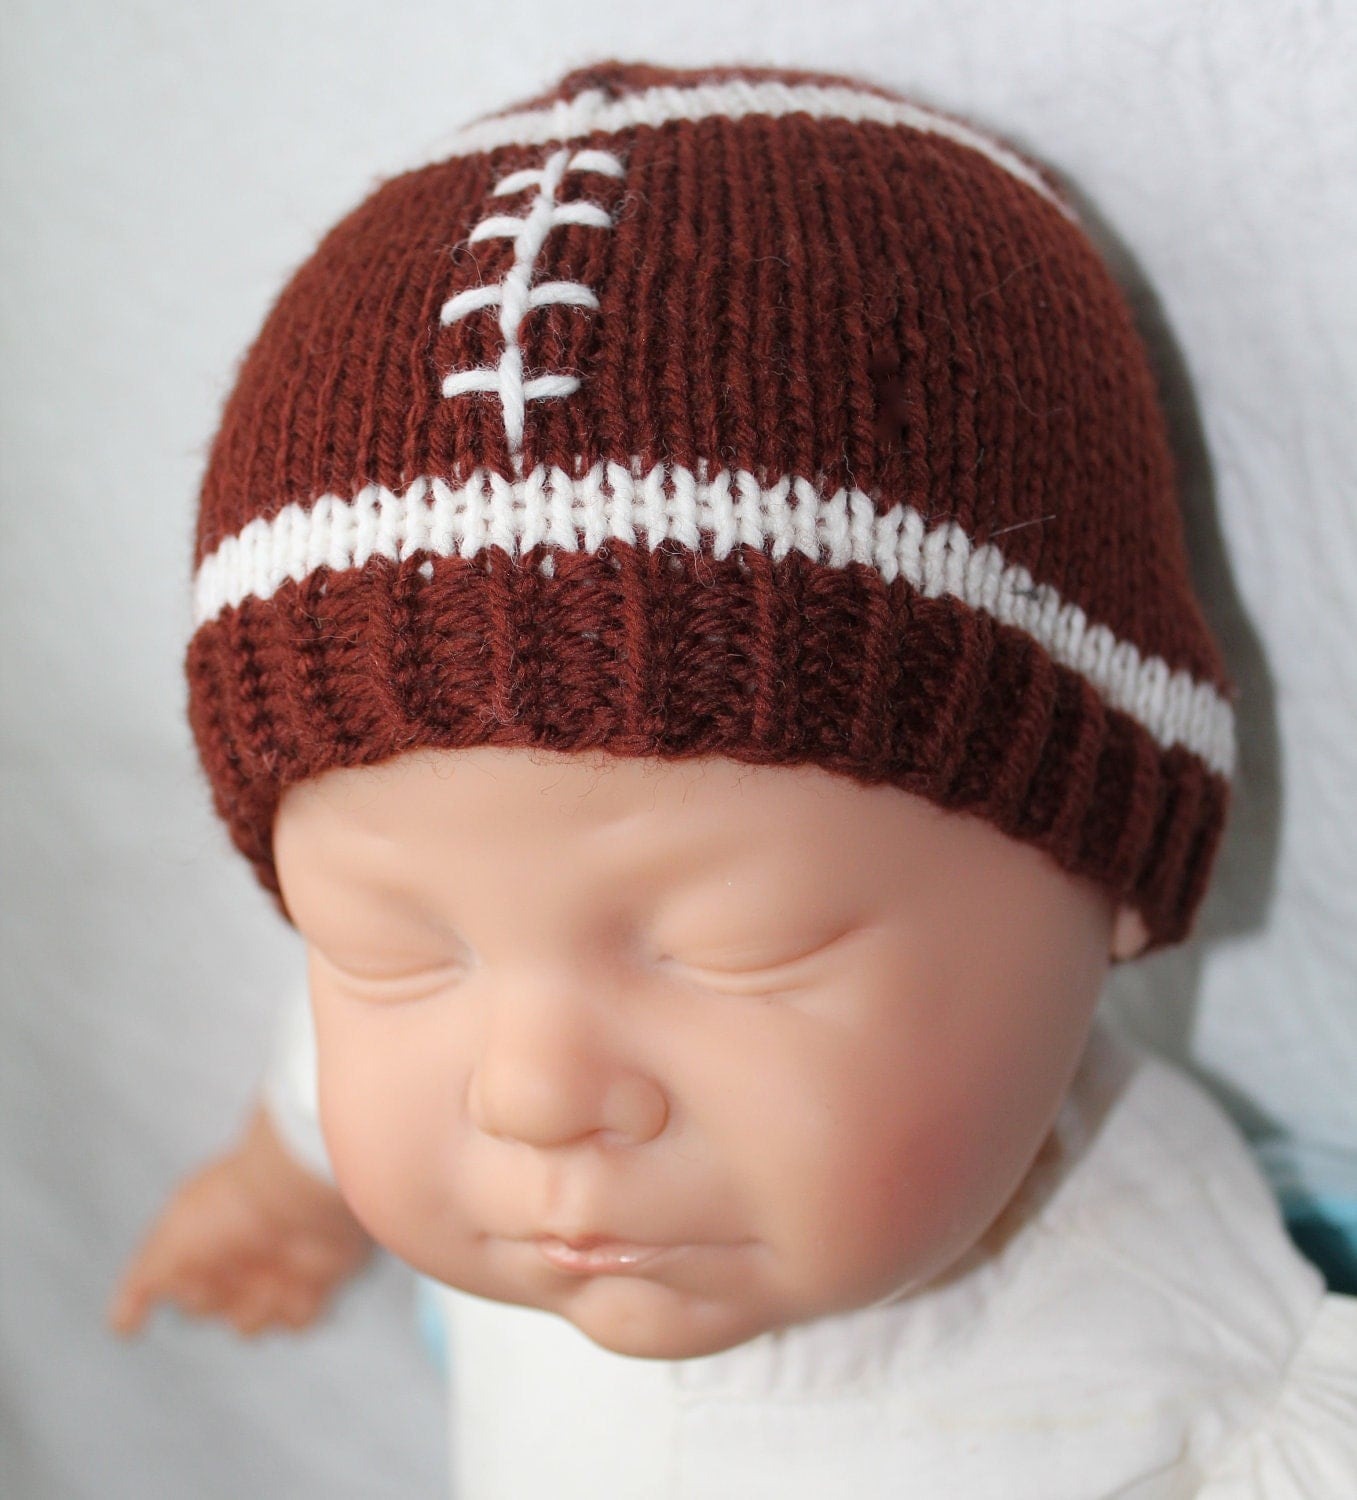 Crochet Pattern Baby Hat Free : KNITTING PATTERN Football Baby Hat Size 0 to 3 and 6 to 12